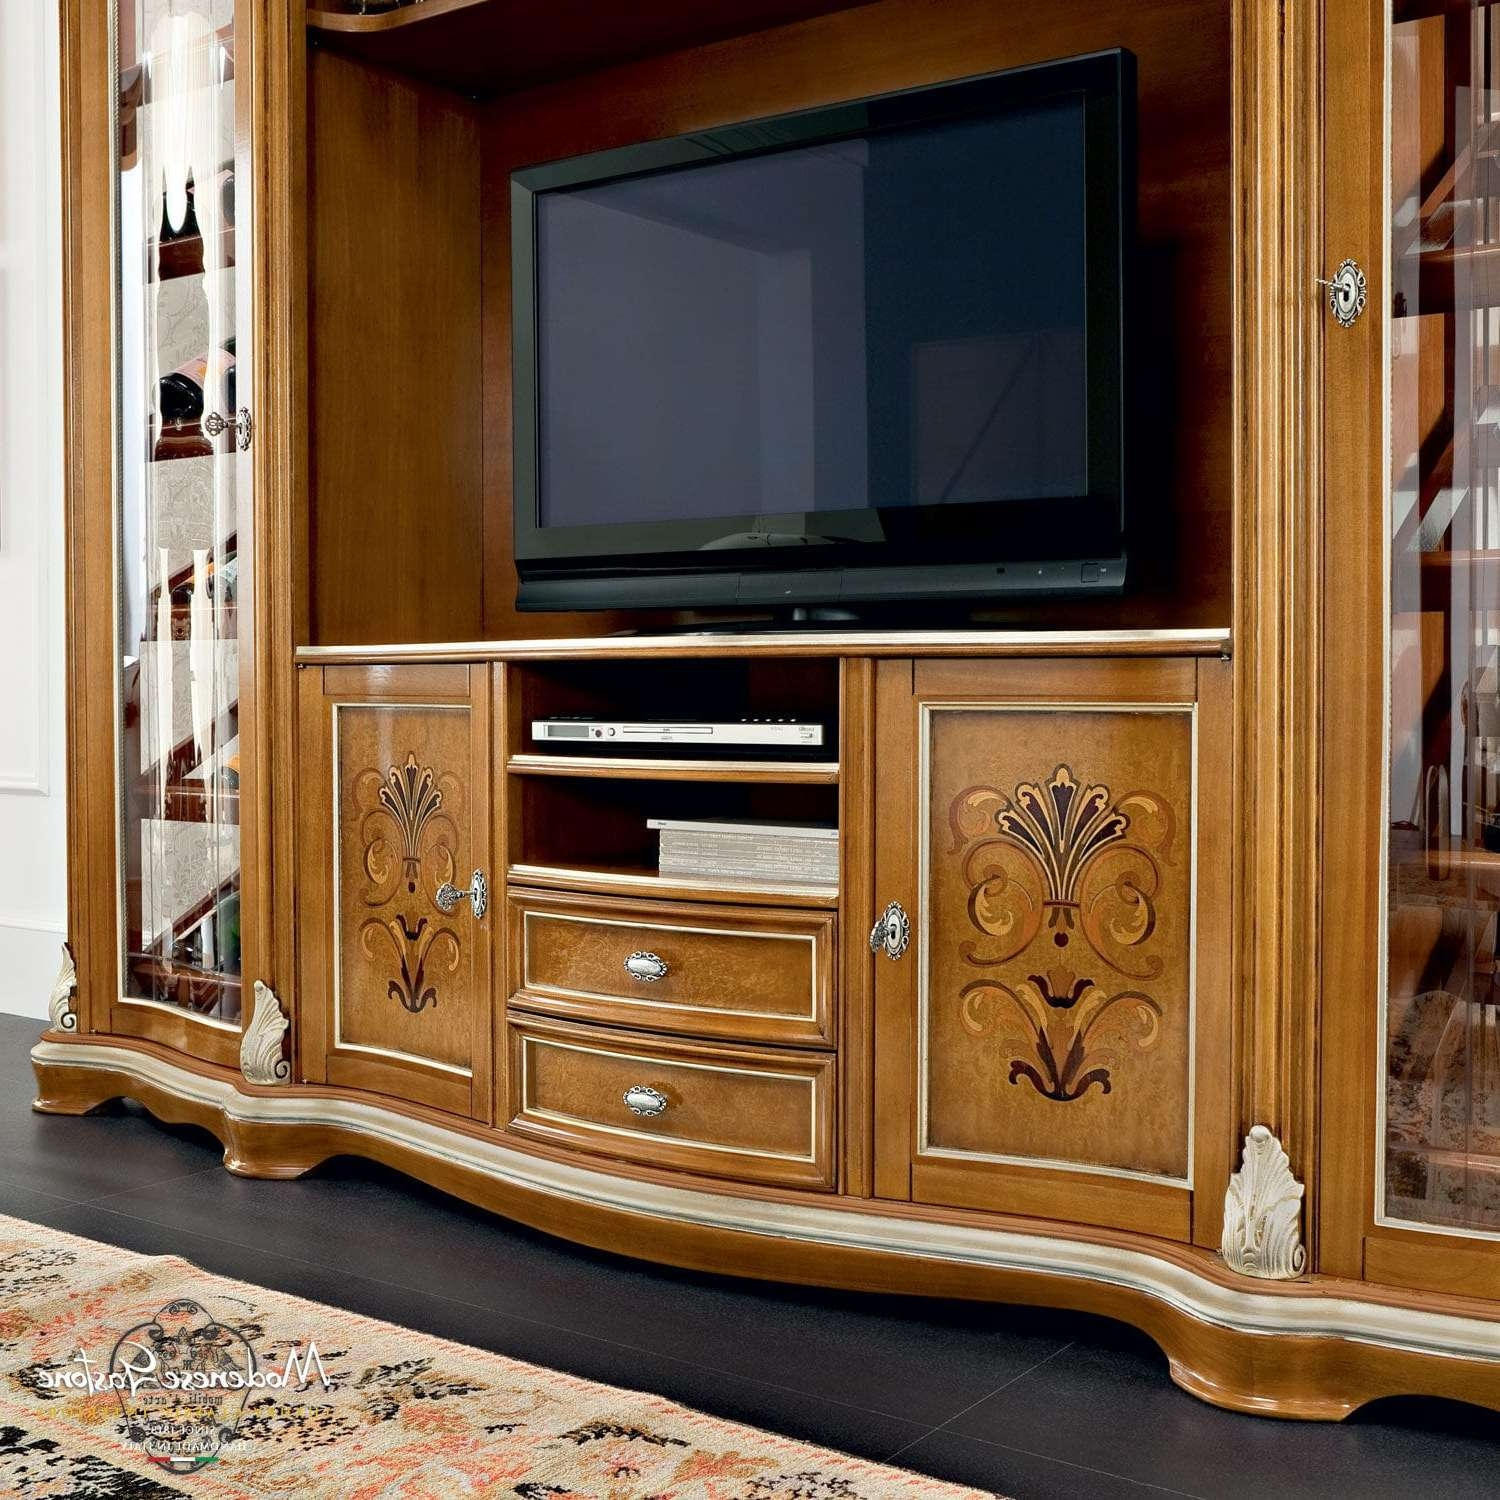 2018 Popular Wooden Tv Cabinets